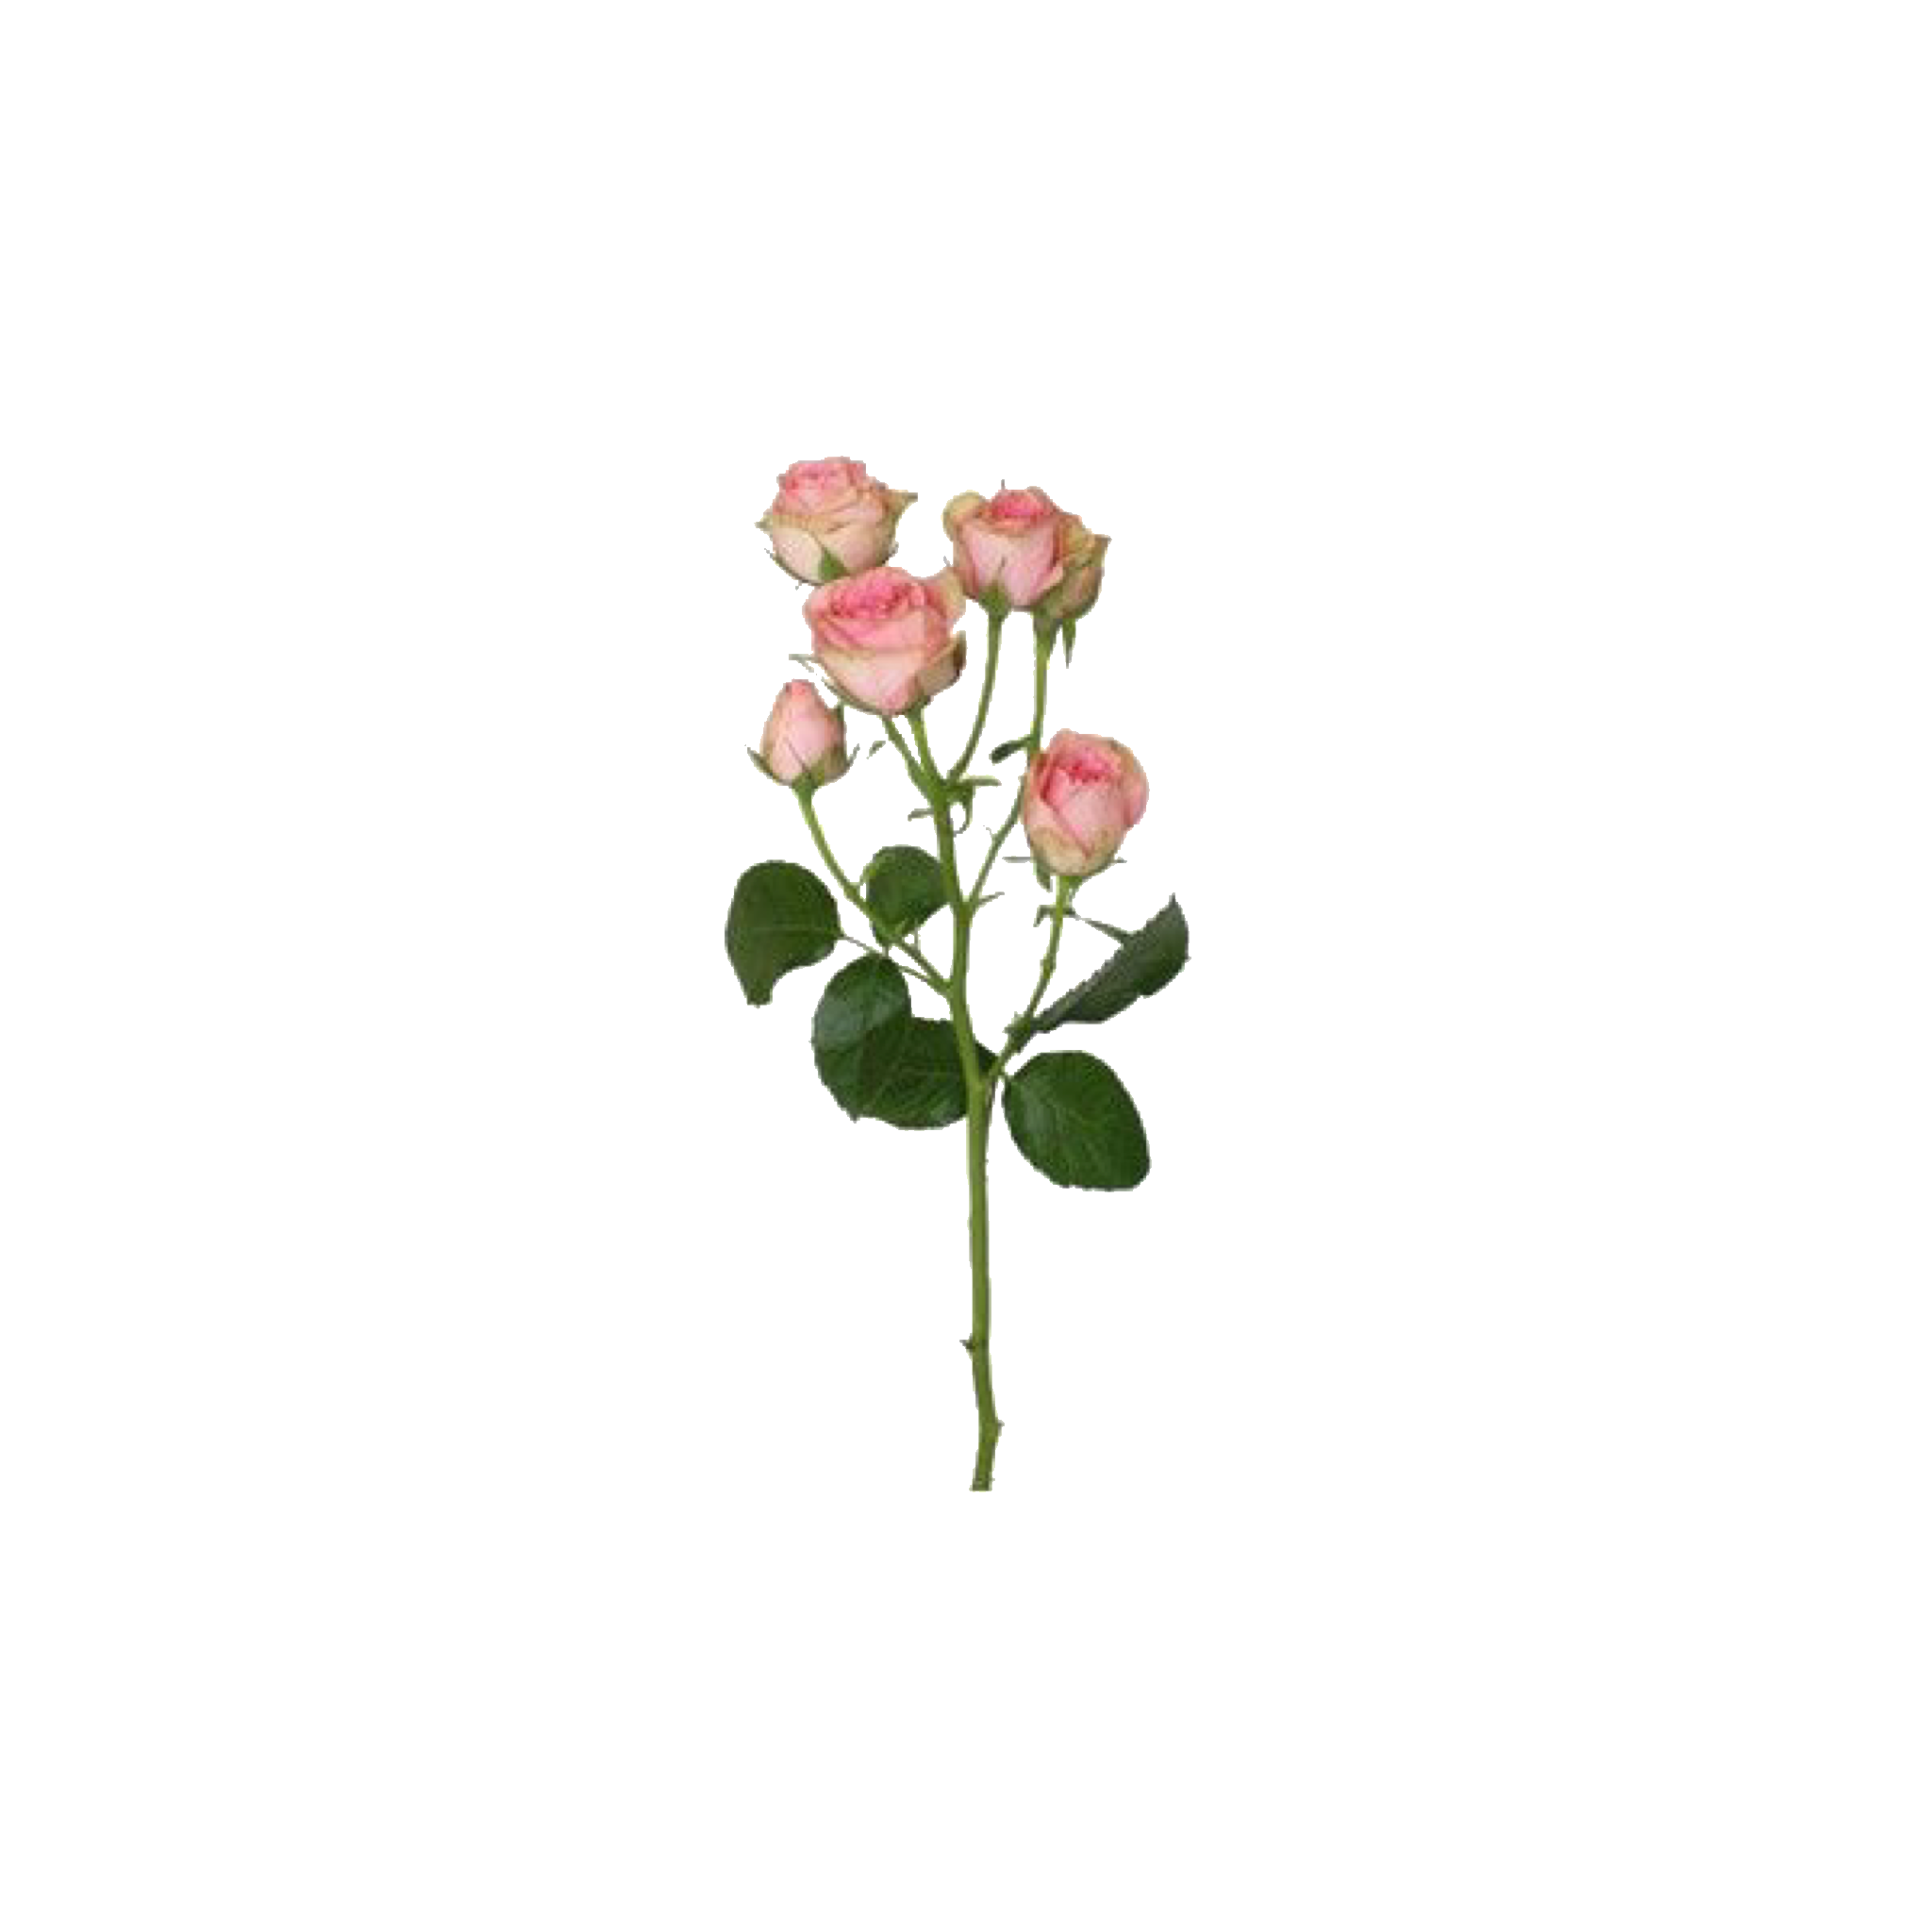 Fake drawing flower. Pin by wickedviv on